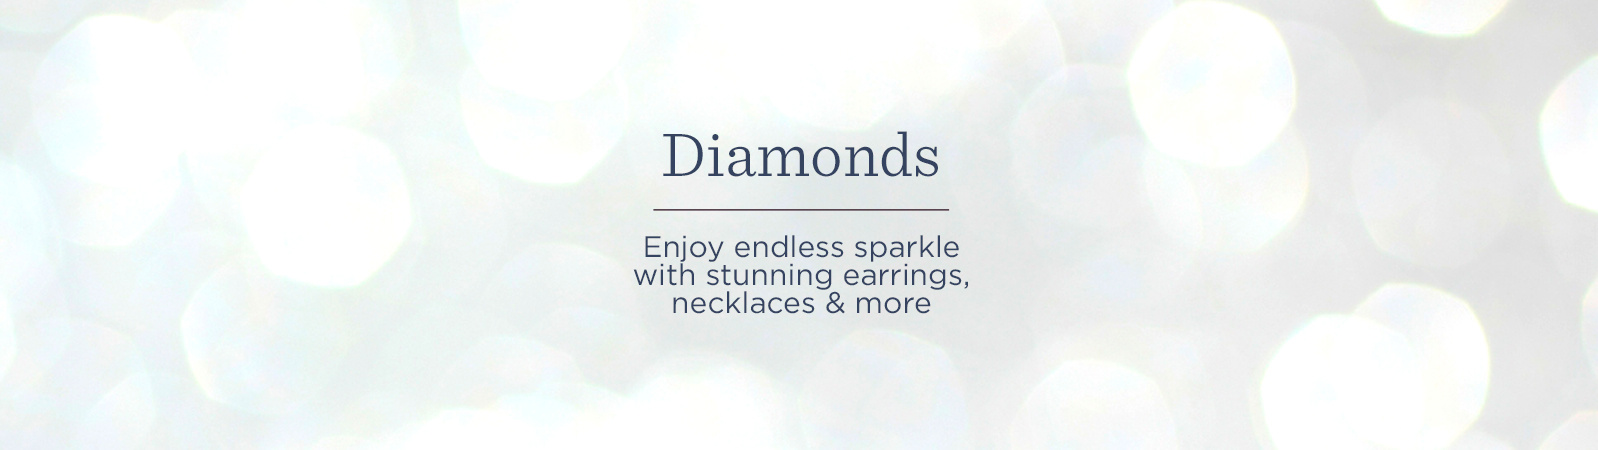 Diamonds  Enjoy endless sparkle with stunning earrings, necklaces & more